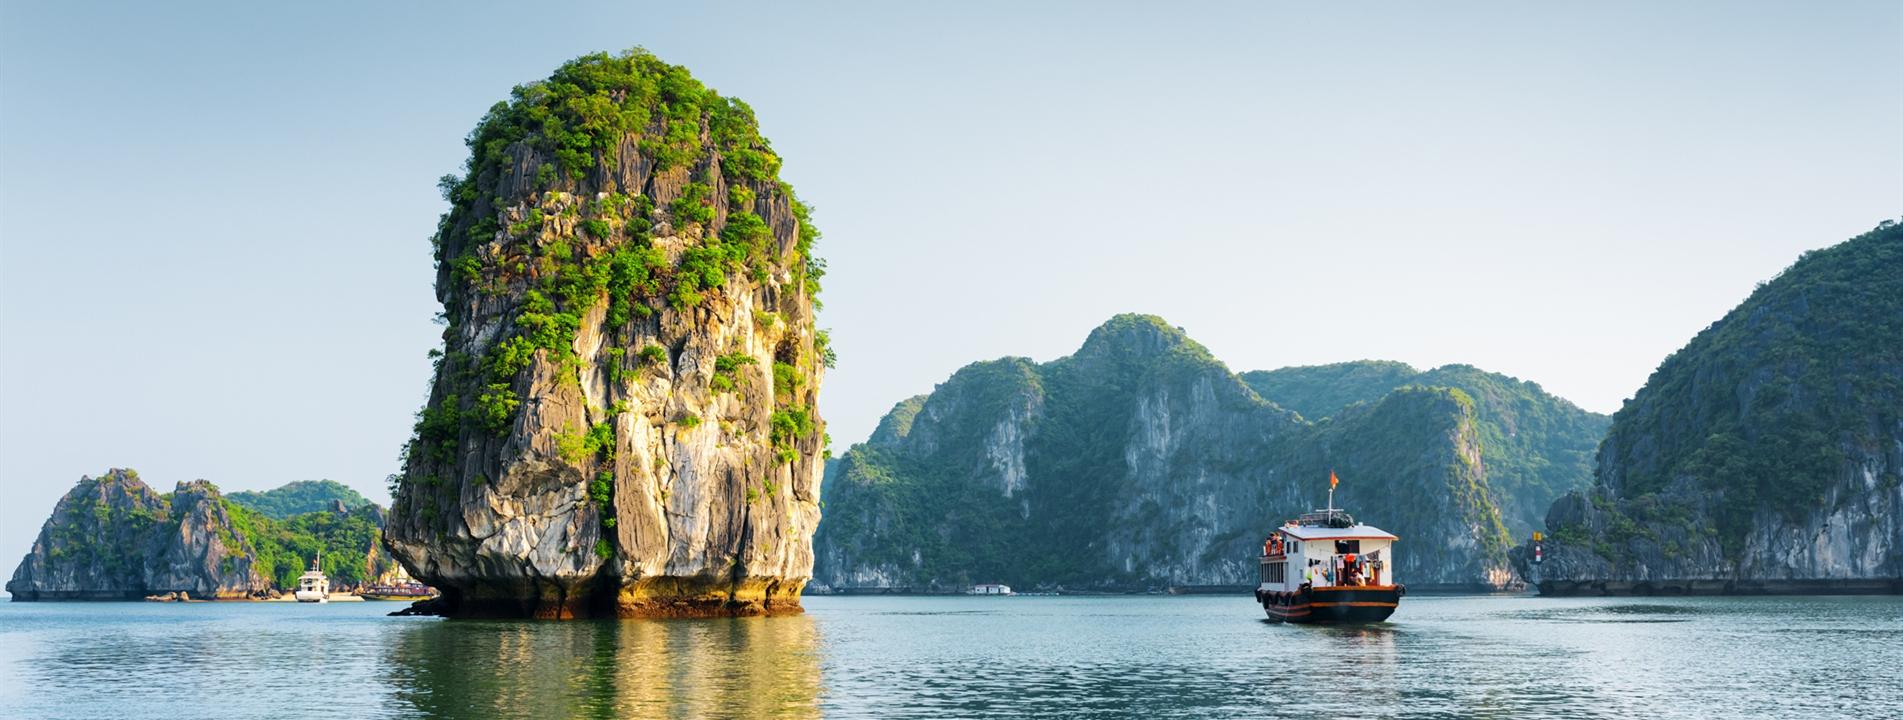 7-Day Northern Vietnam Family Discovery Tour